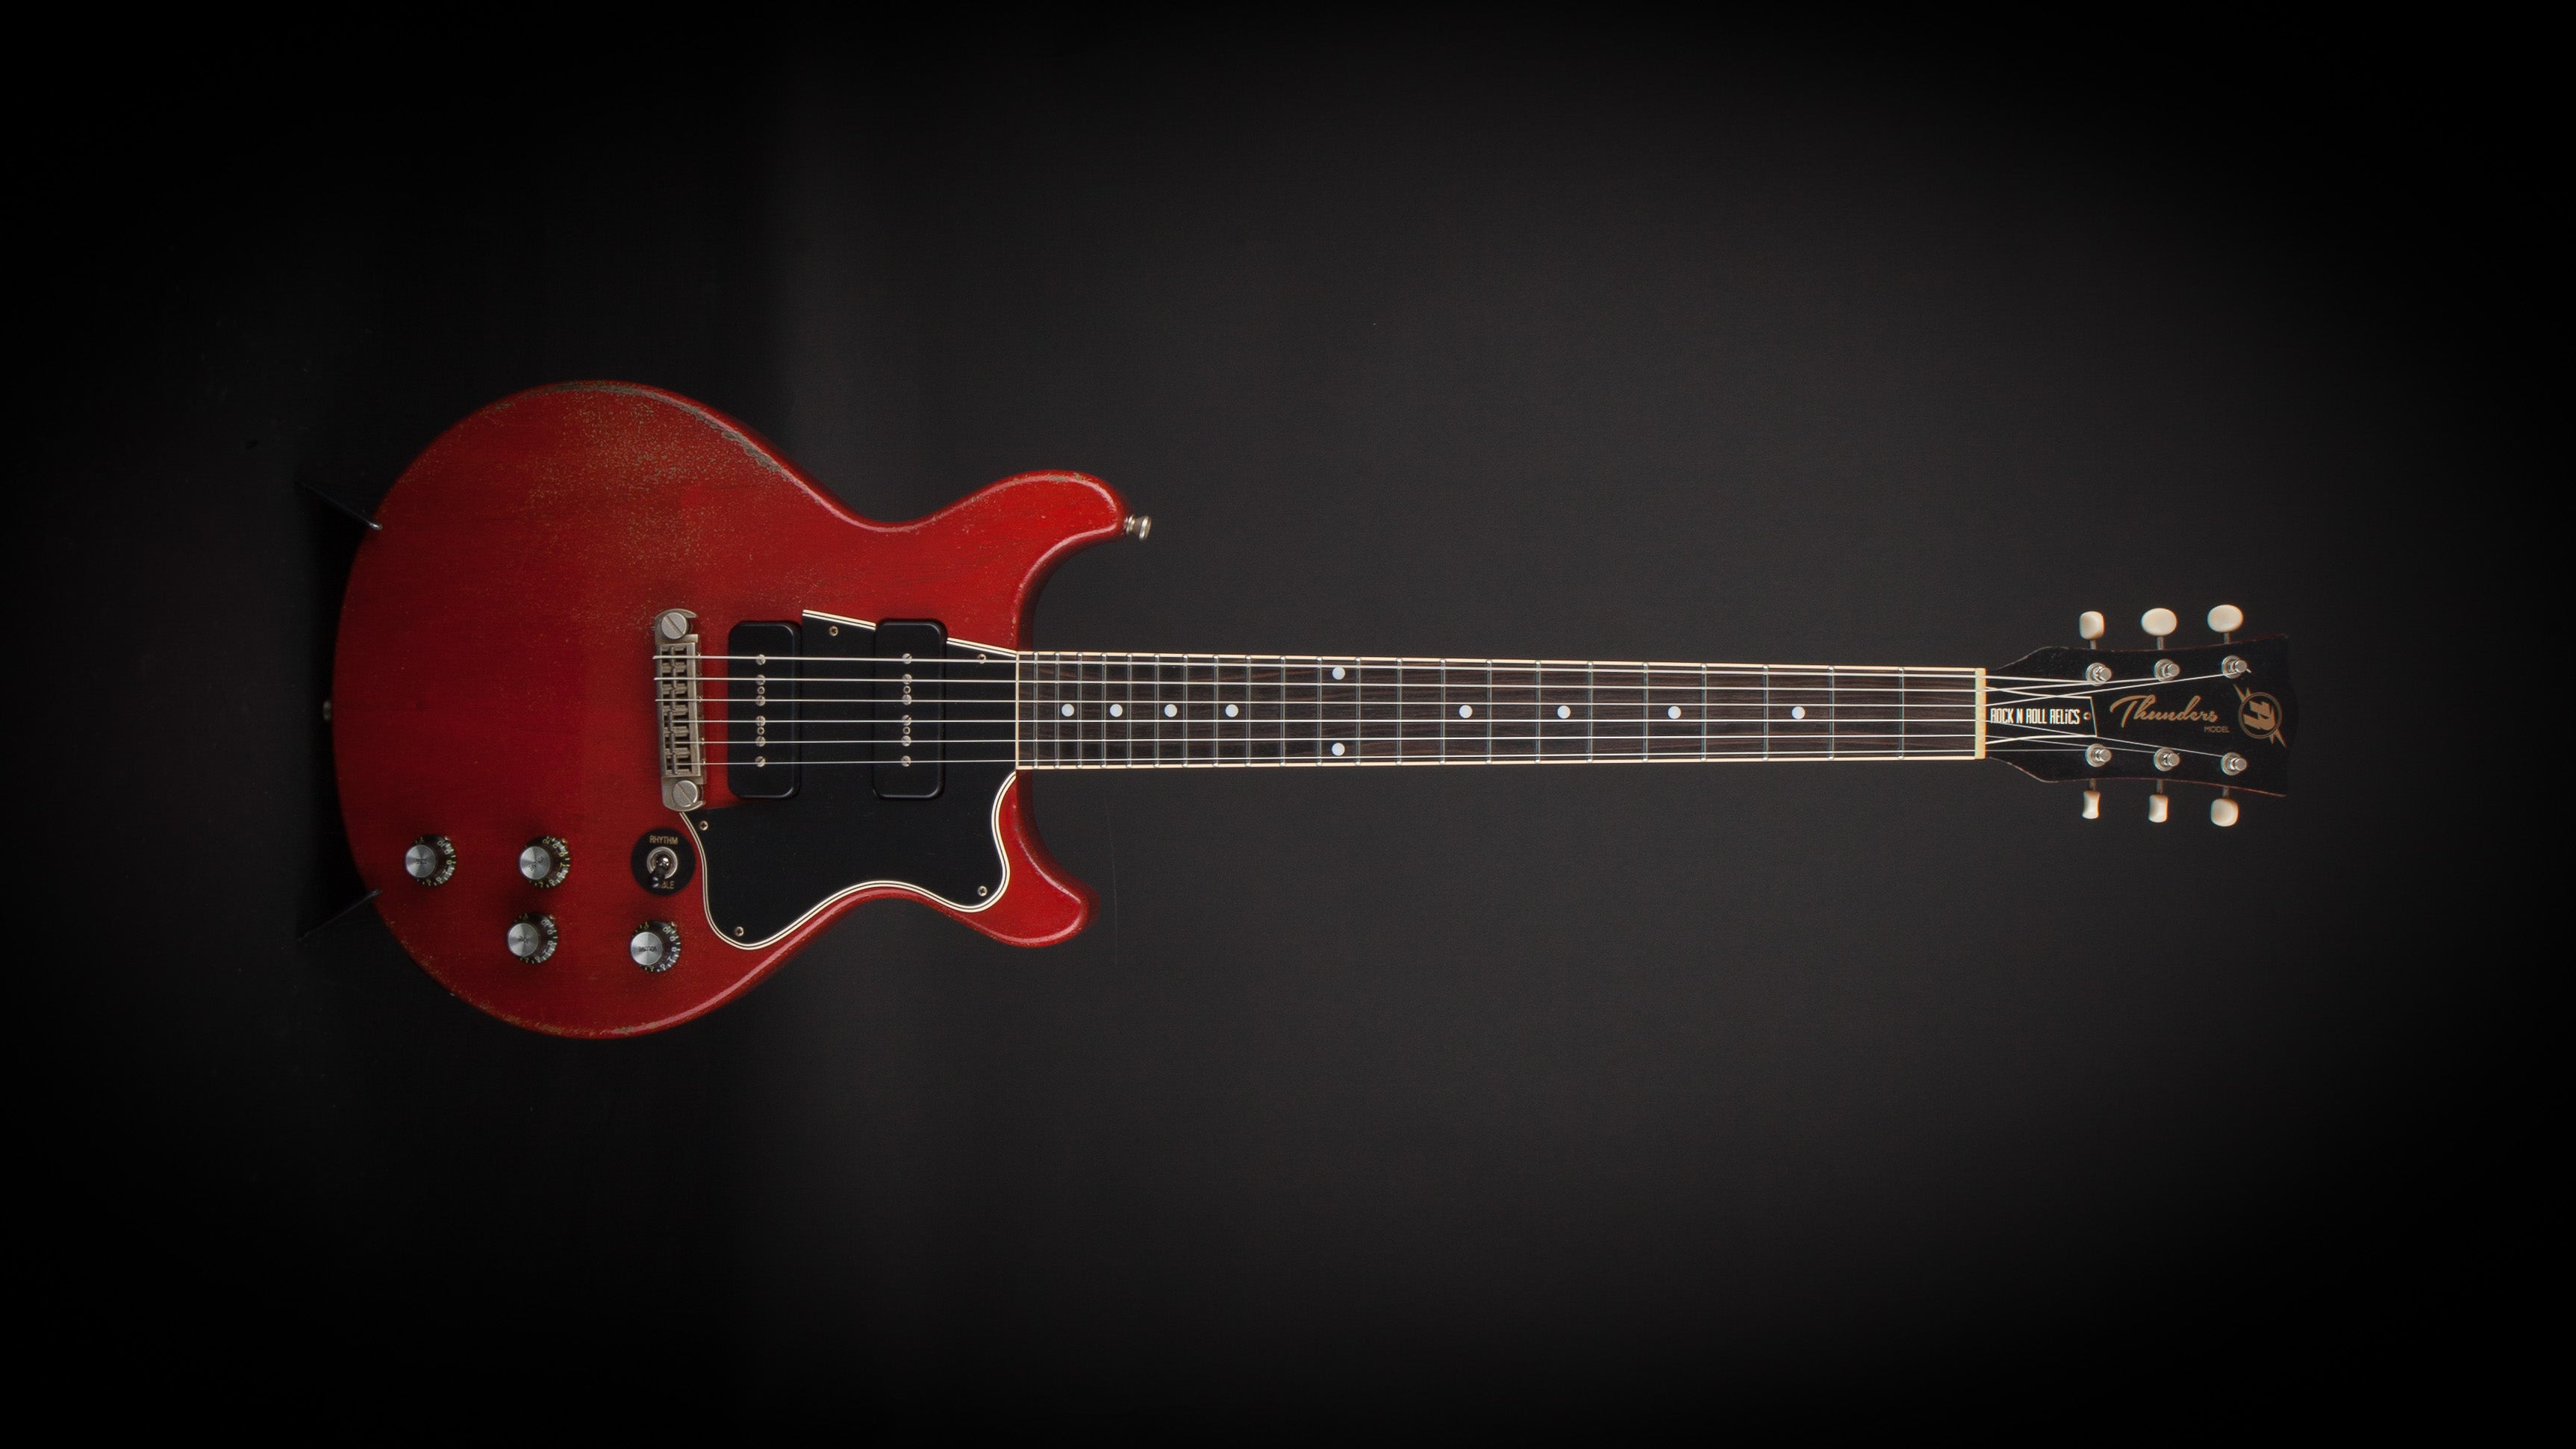 Rock n Roll Relics: Thunders Cherry Red with P90's #19881